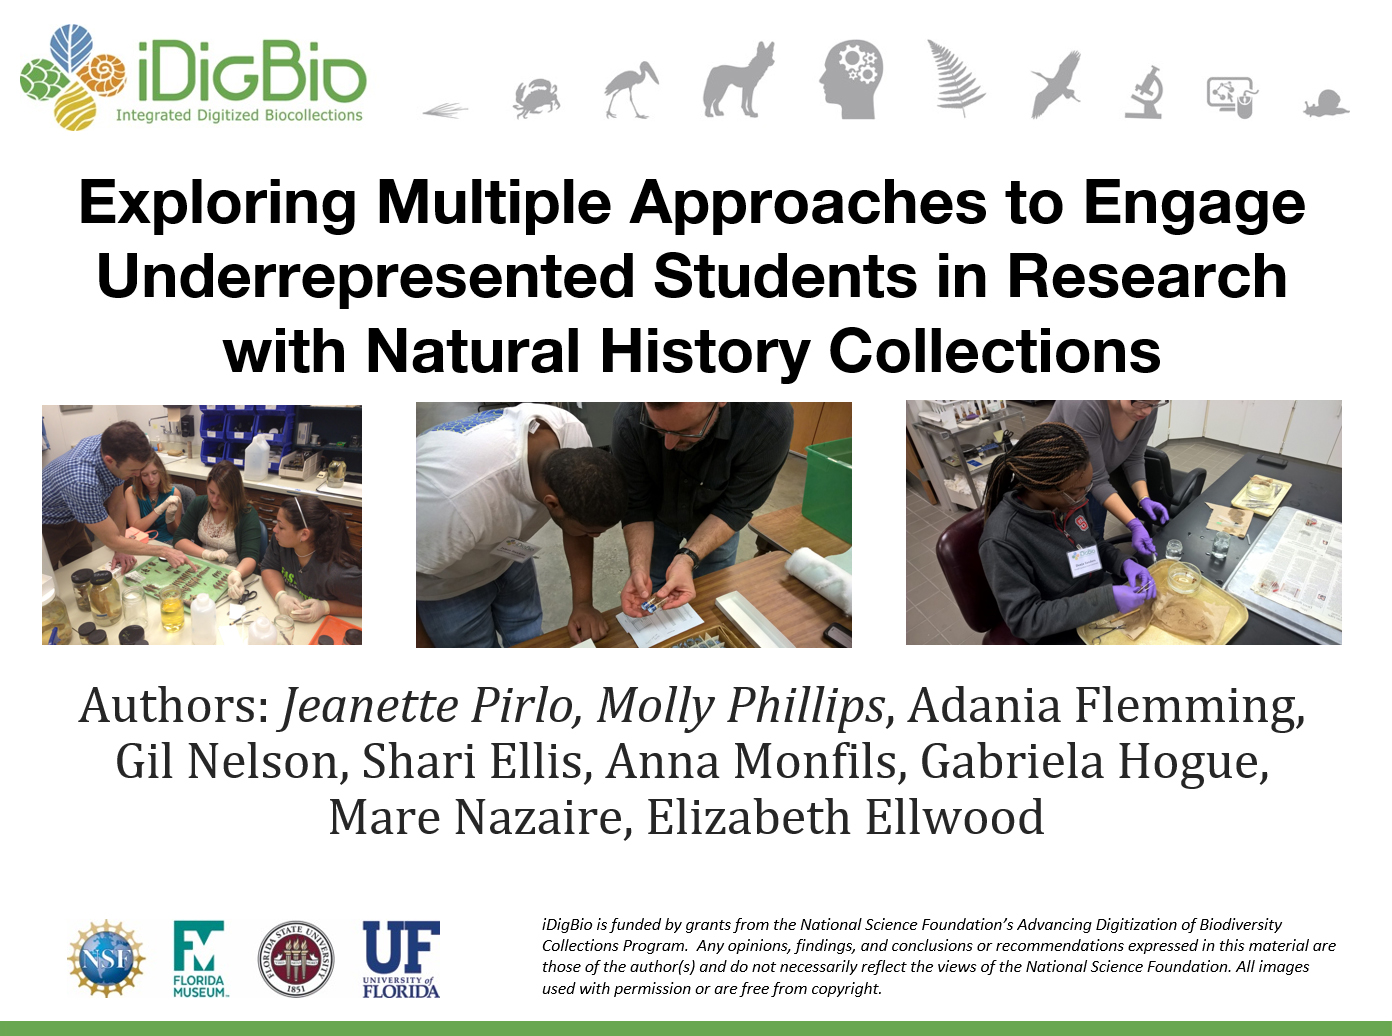 Exploring multiple approaches to engage underrepresented students in research with natural history collections.